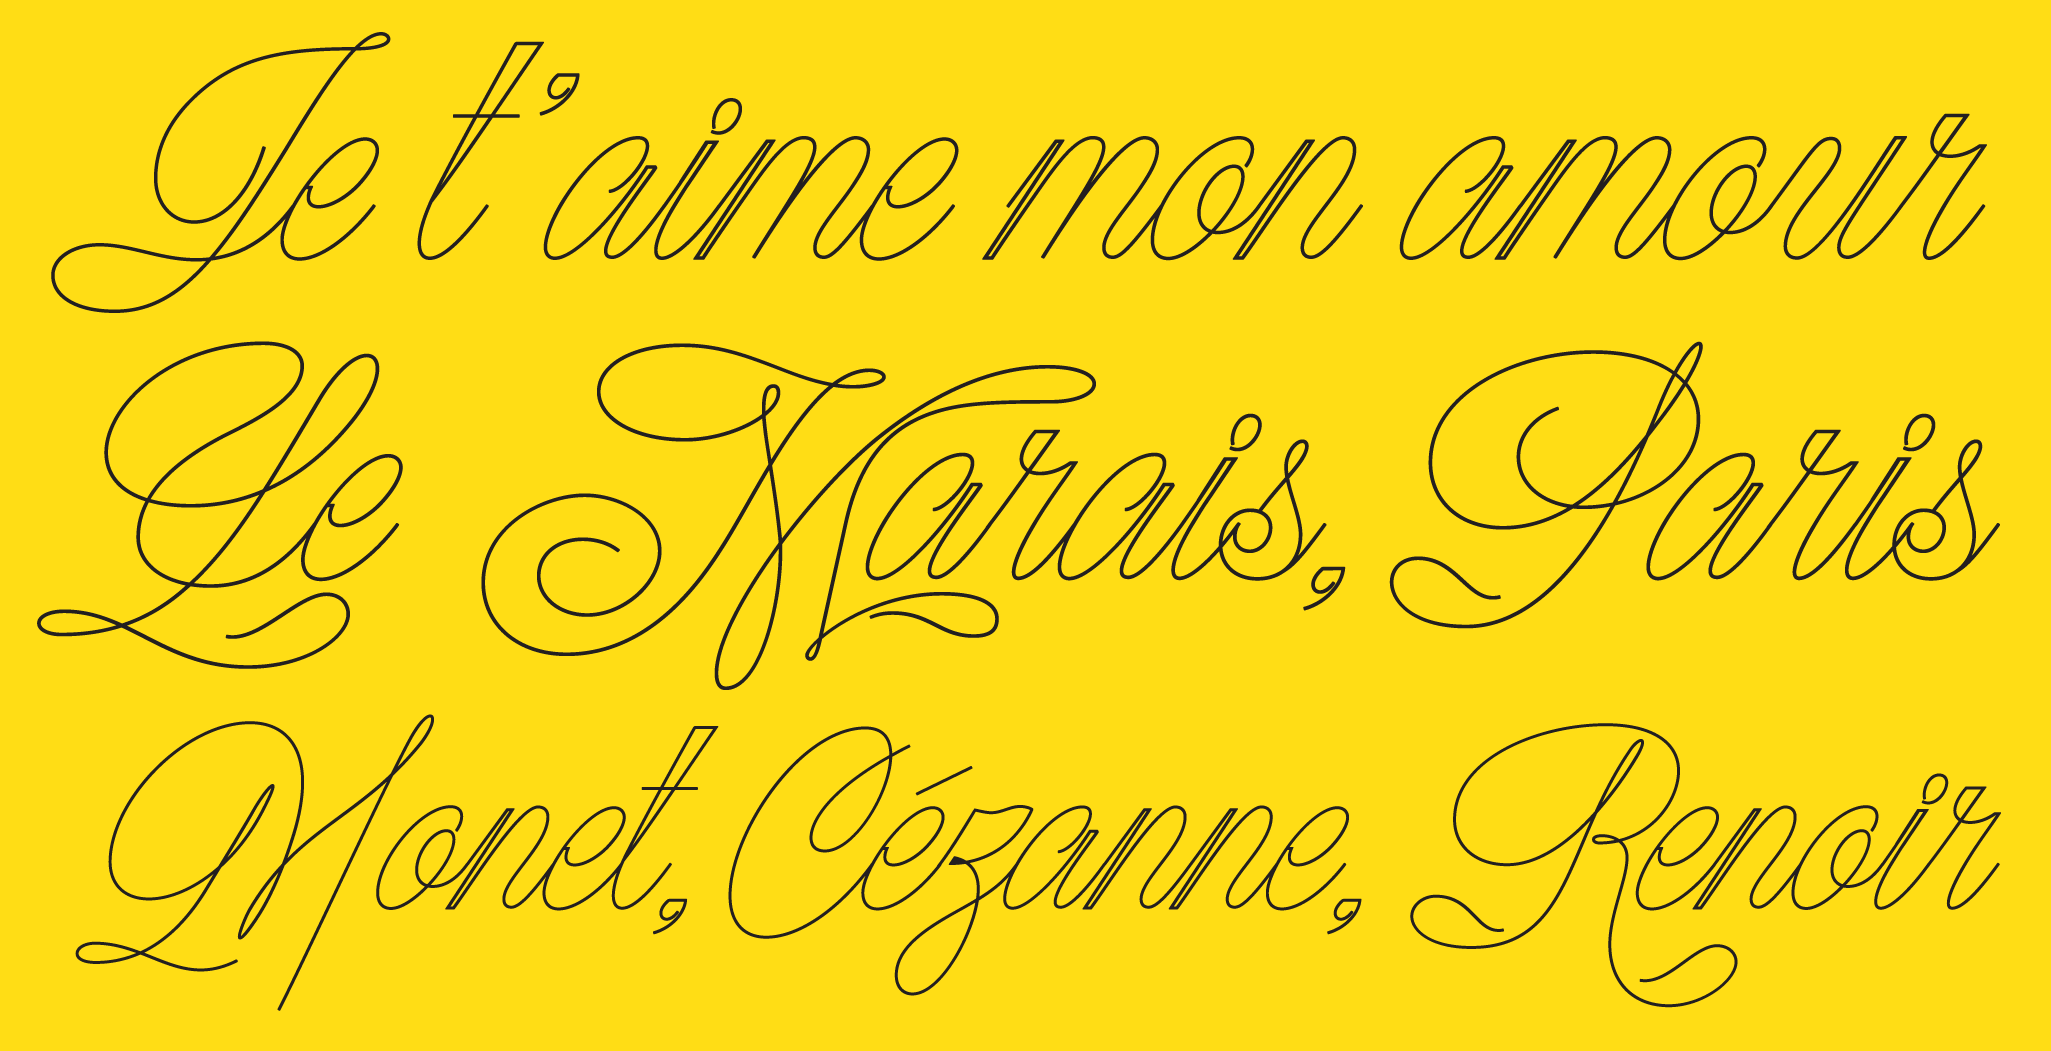 Kitsune, a new script typeface designed by Andrei Robu. Available on www.typeverything.com